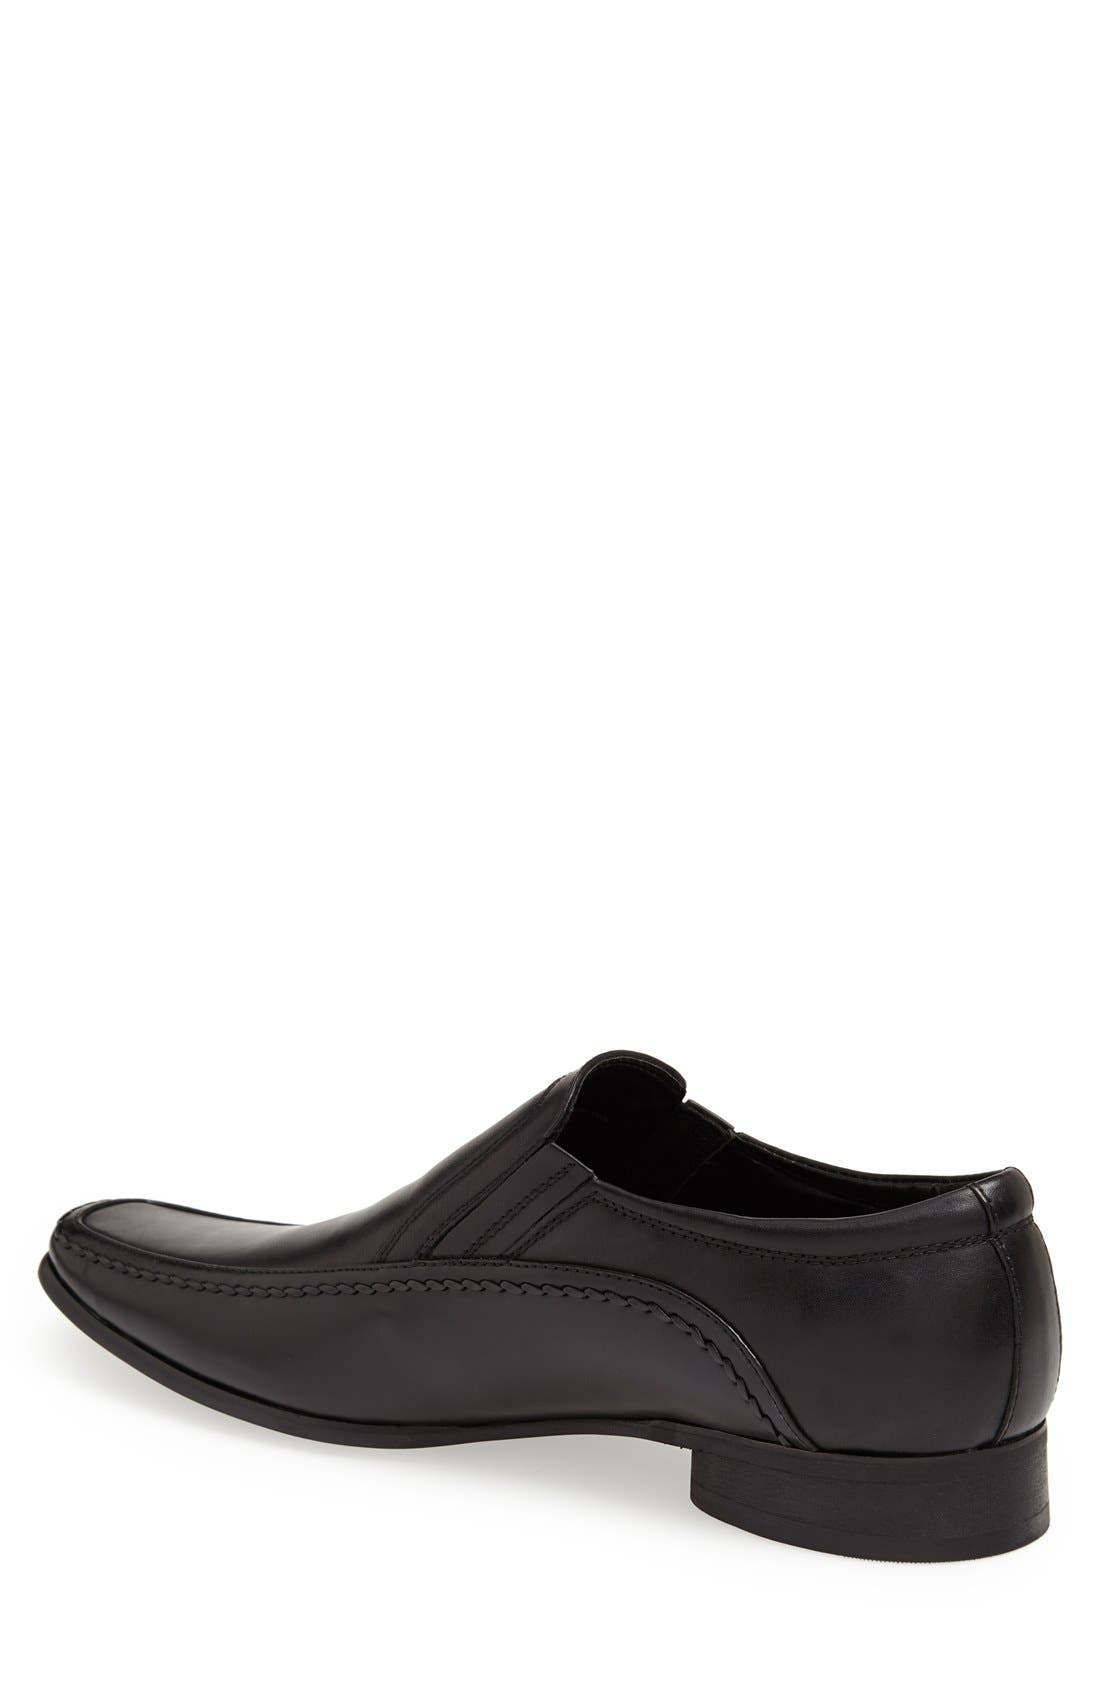 Alternate Image 2  - Reaction Kenneth Cole 'Key Note' Slip-On